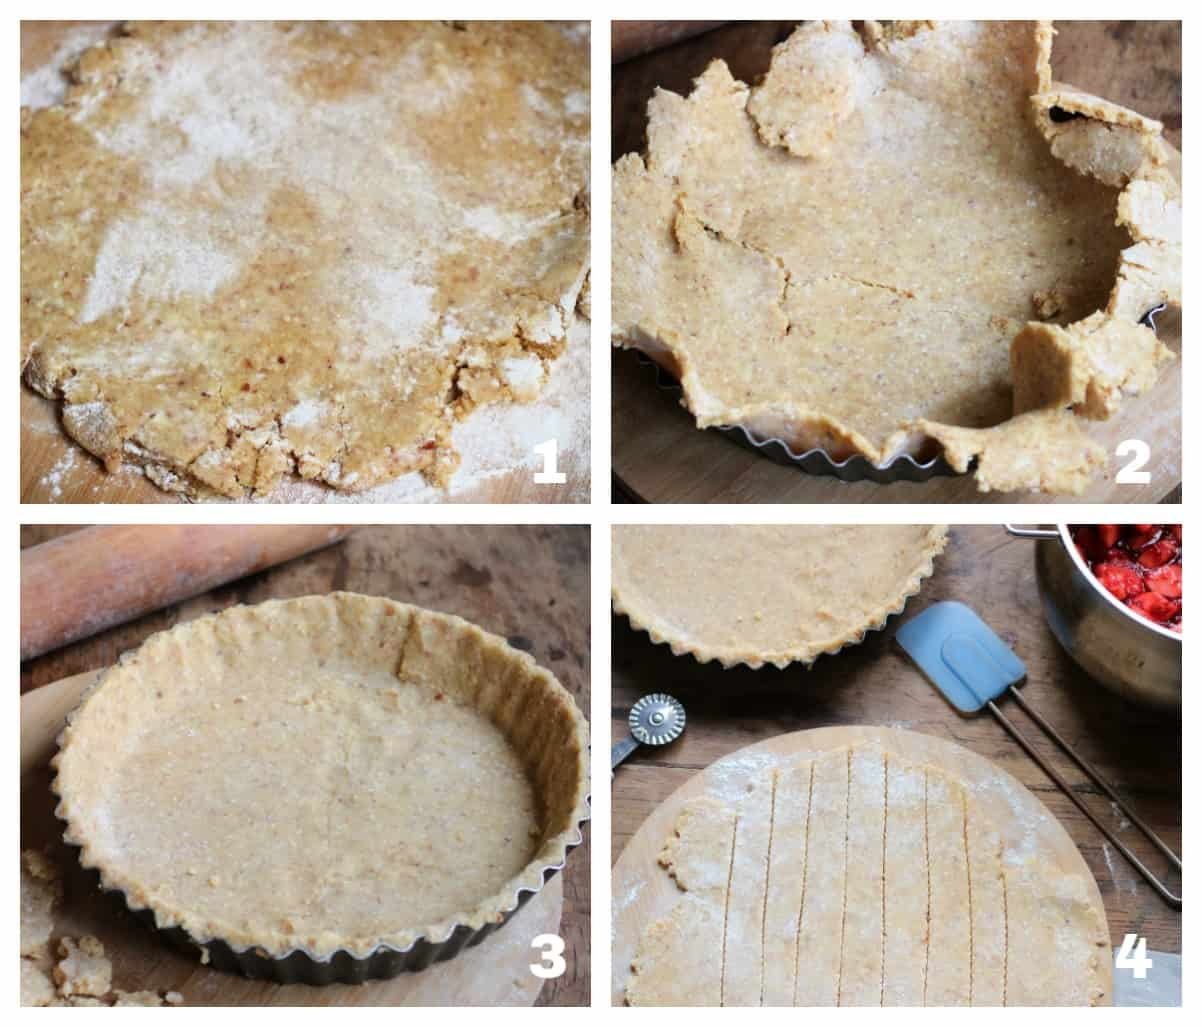 Image collage of pie rolling and pan lining process